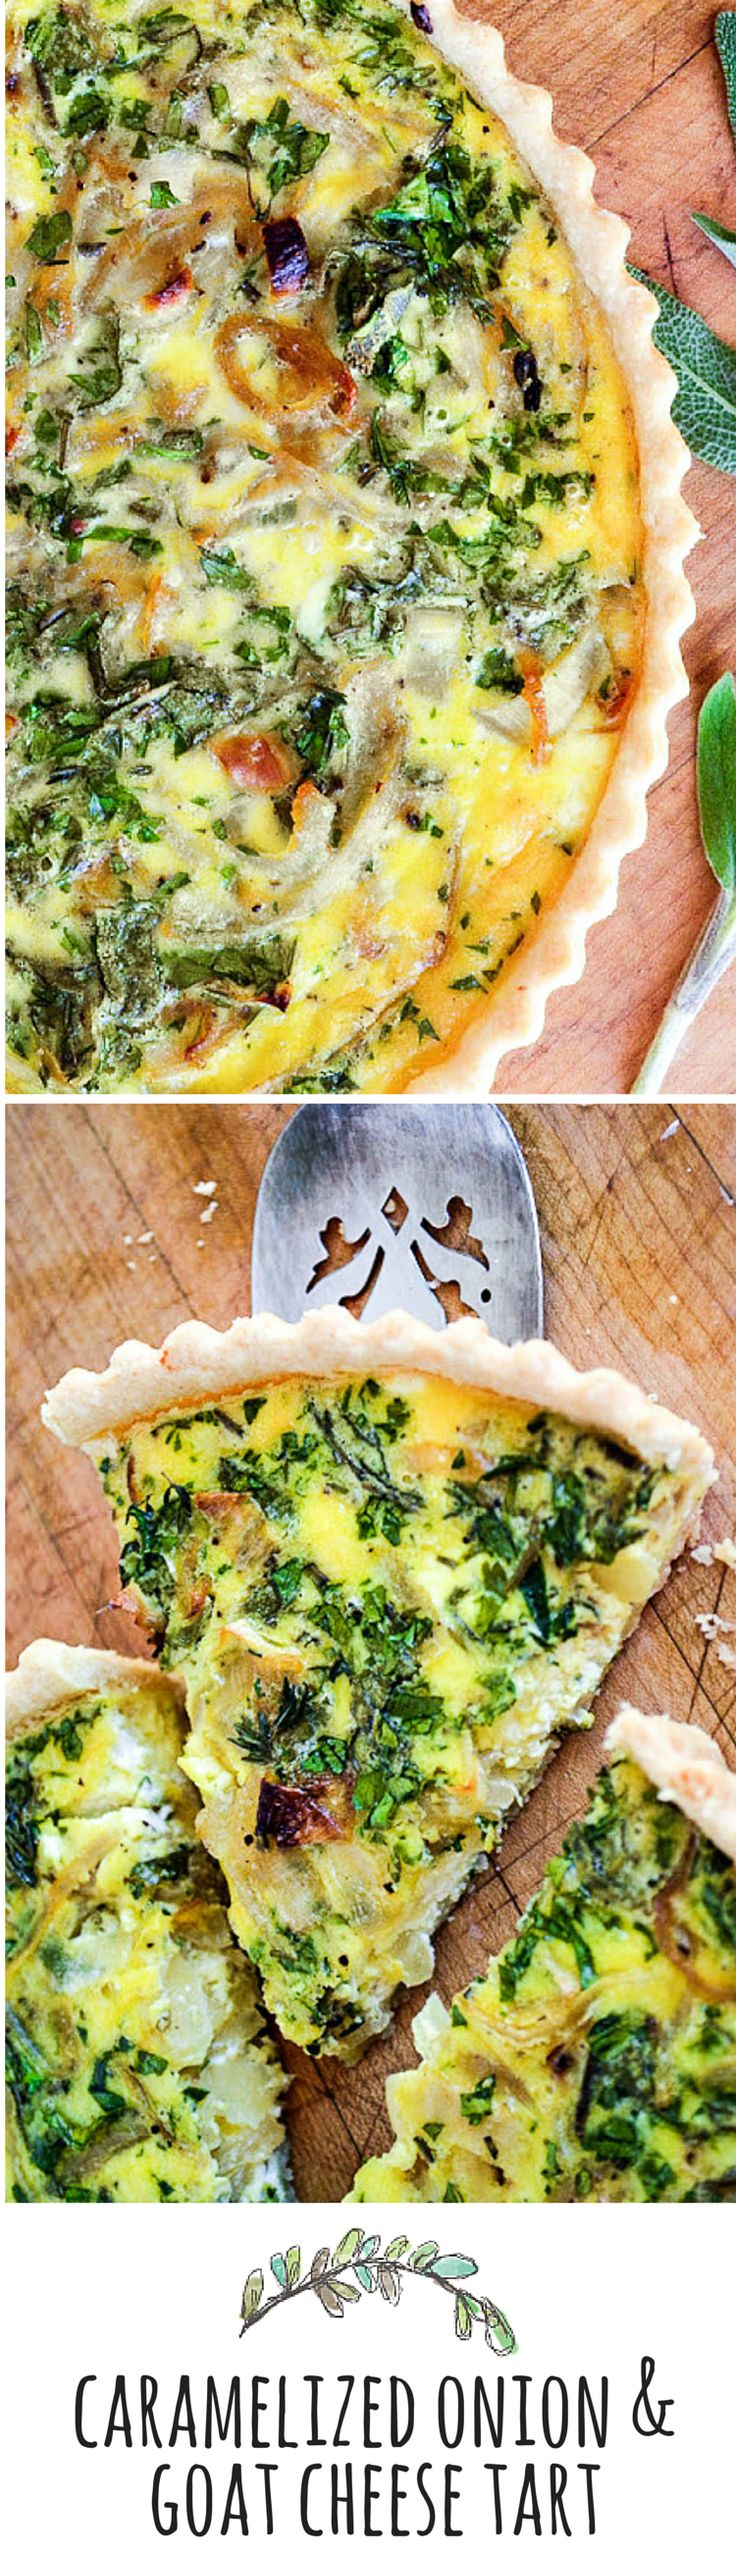 This elegant vegetarian tart is the perfect light summer meal, it's basically a quiche baked up in a prettier pan, with the flavors kicked up a few notches.